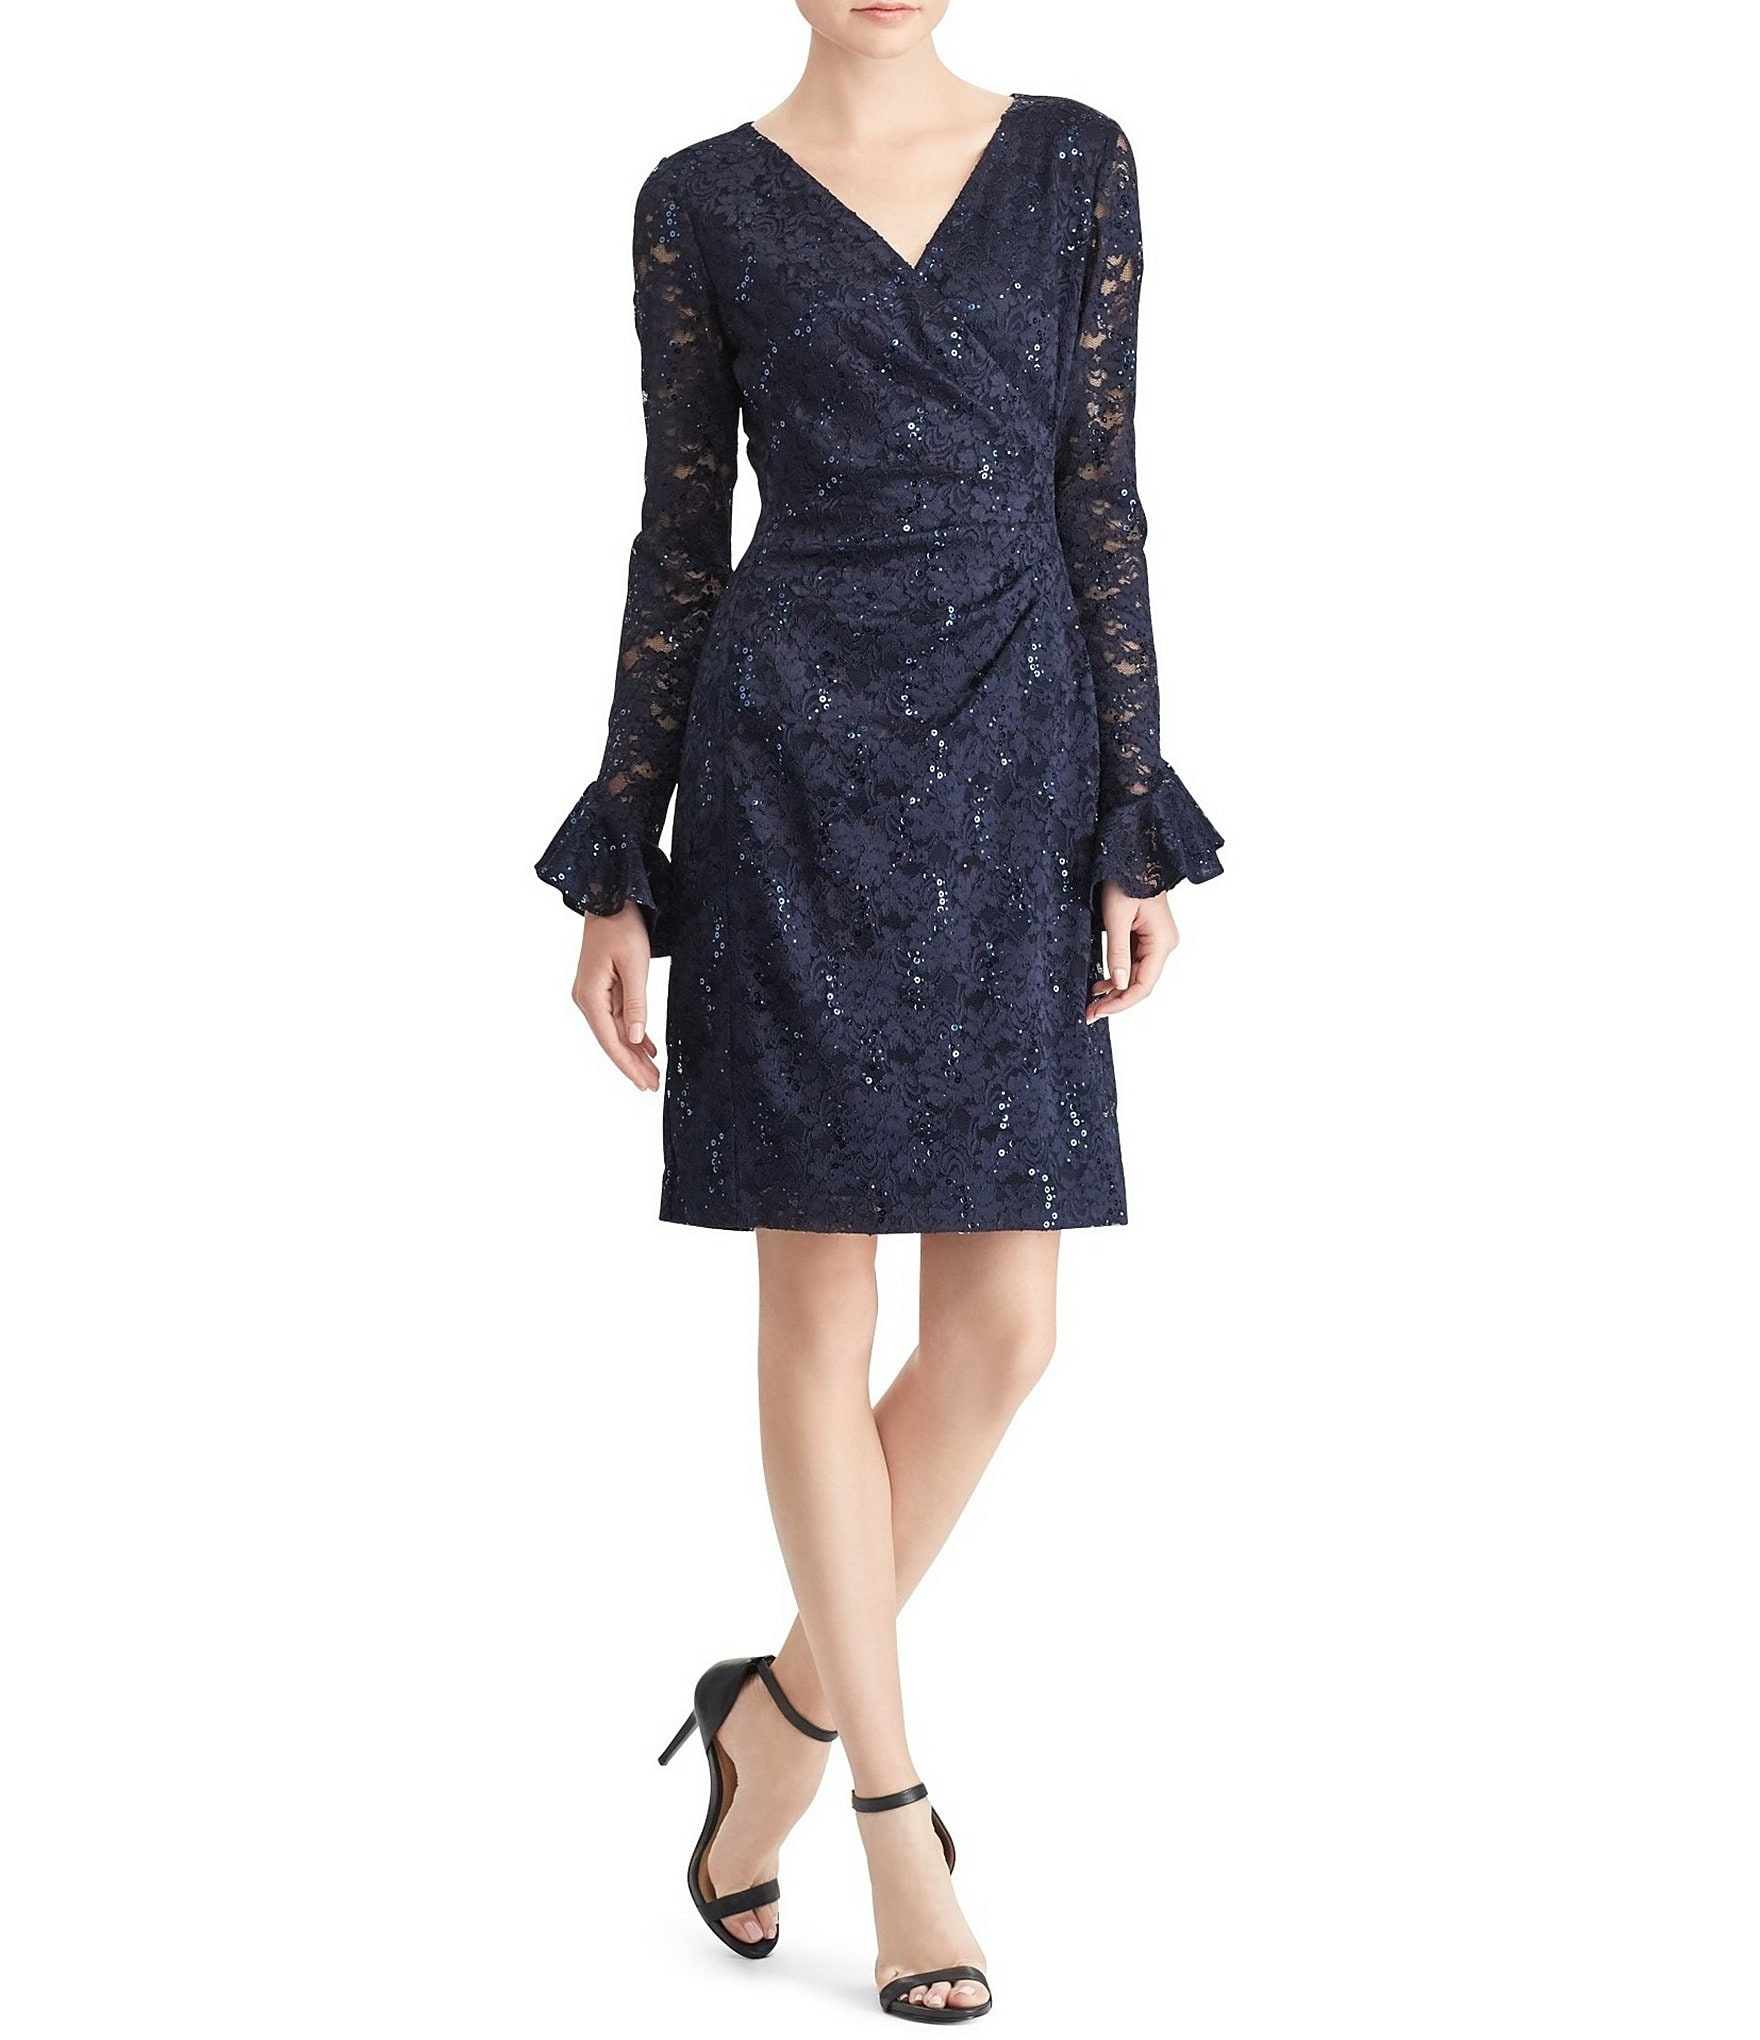 Navy Lace Dress With Black Shoes